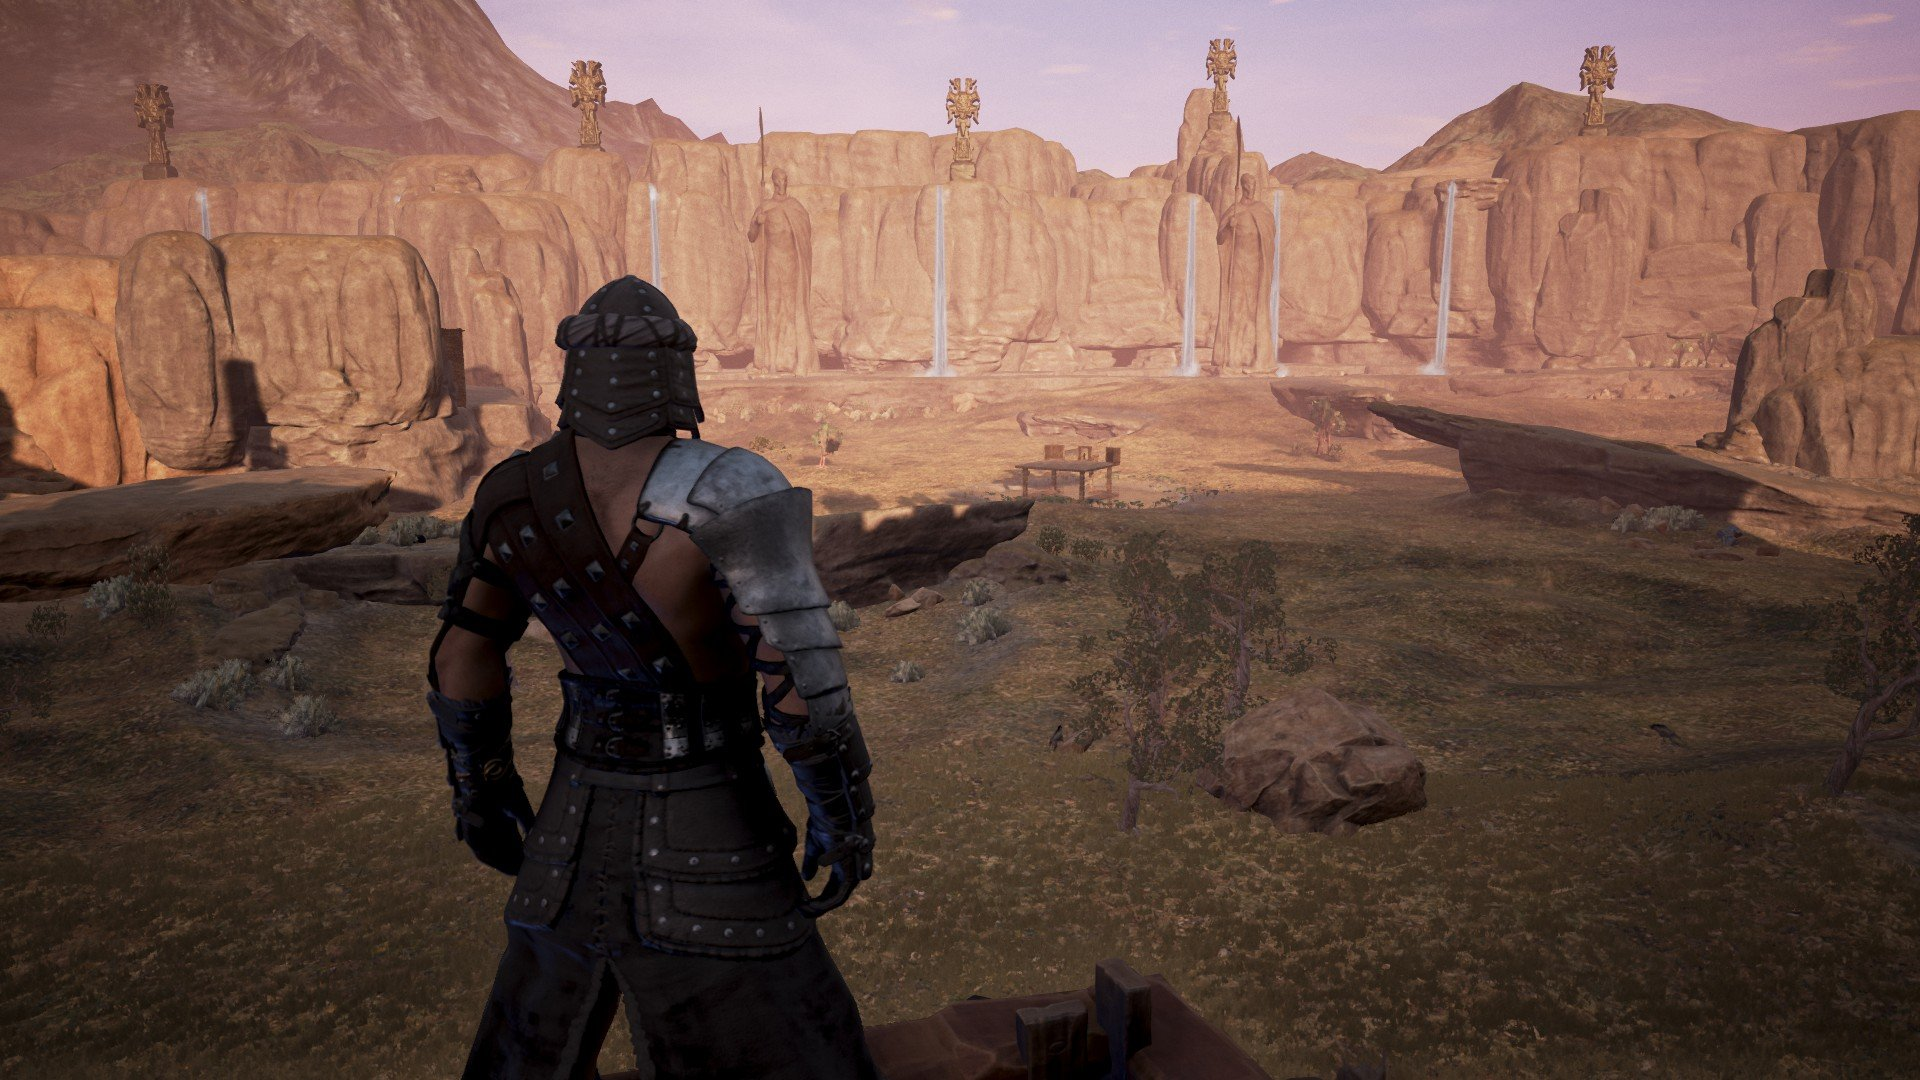 Conan Exiles Review 2020.Conan Exiles Review I Will Survive We Got This Covered